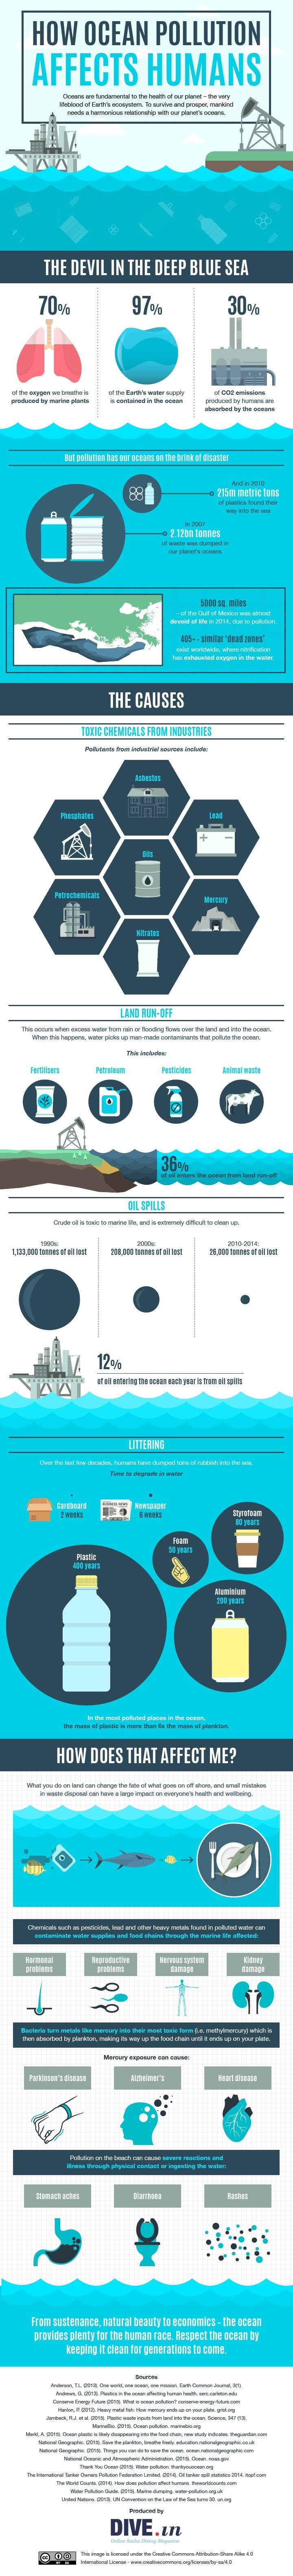 How ocean pollution affects humans